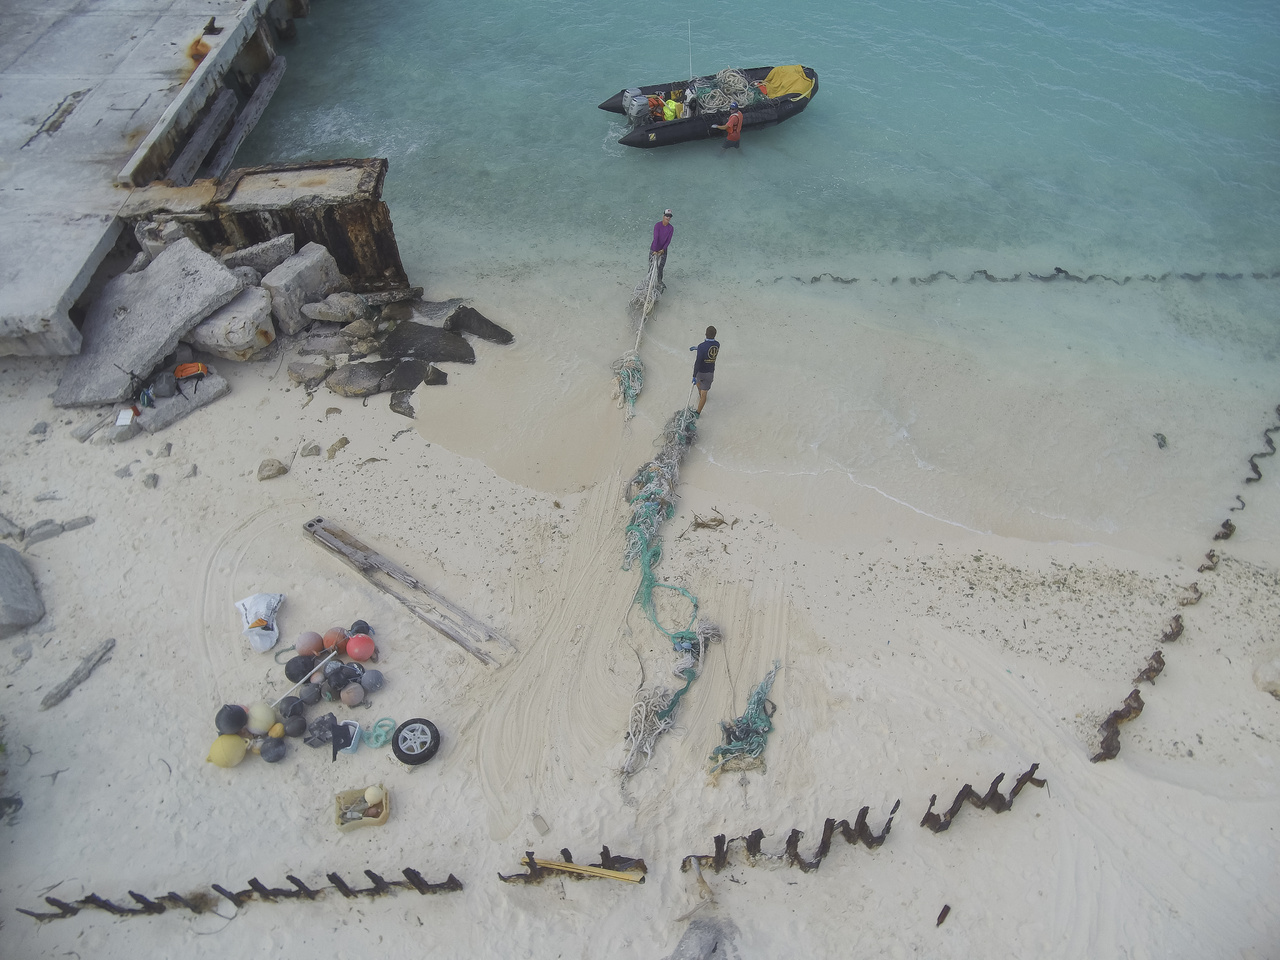 Removing the collected debris from the shorelines is the next step, and it is a task of its own. Scientists Kelley and Pamatat bring the fishing nets onto the small boat to transport them to the Sand Island, the main island of Midway Atoll. (Photo: NOAA Fisheries/Steven Gnam)